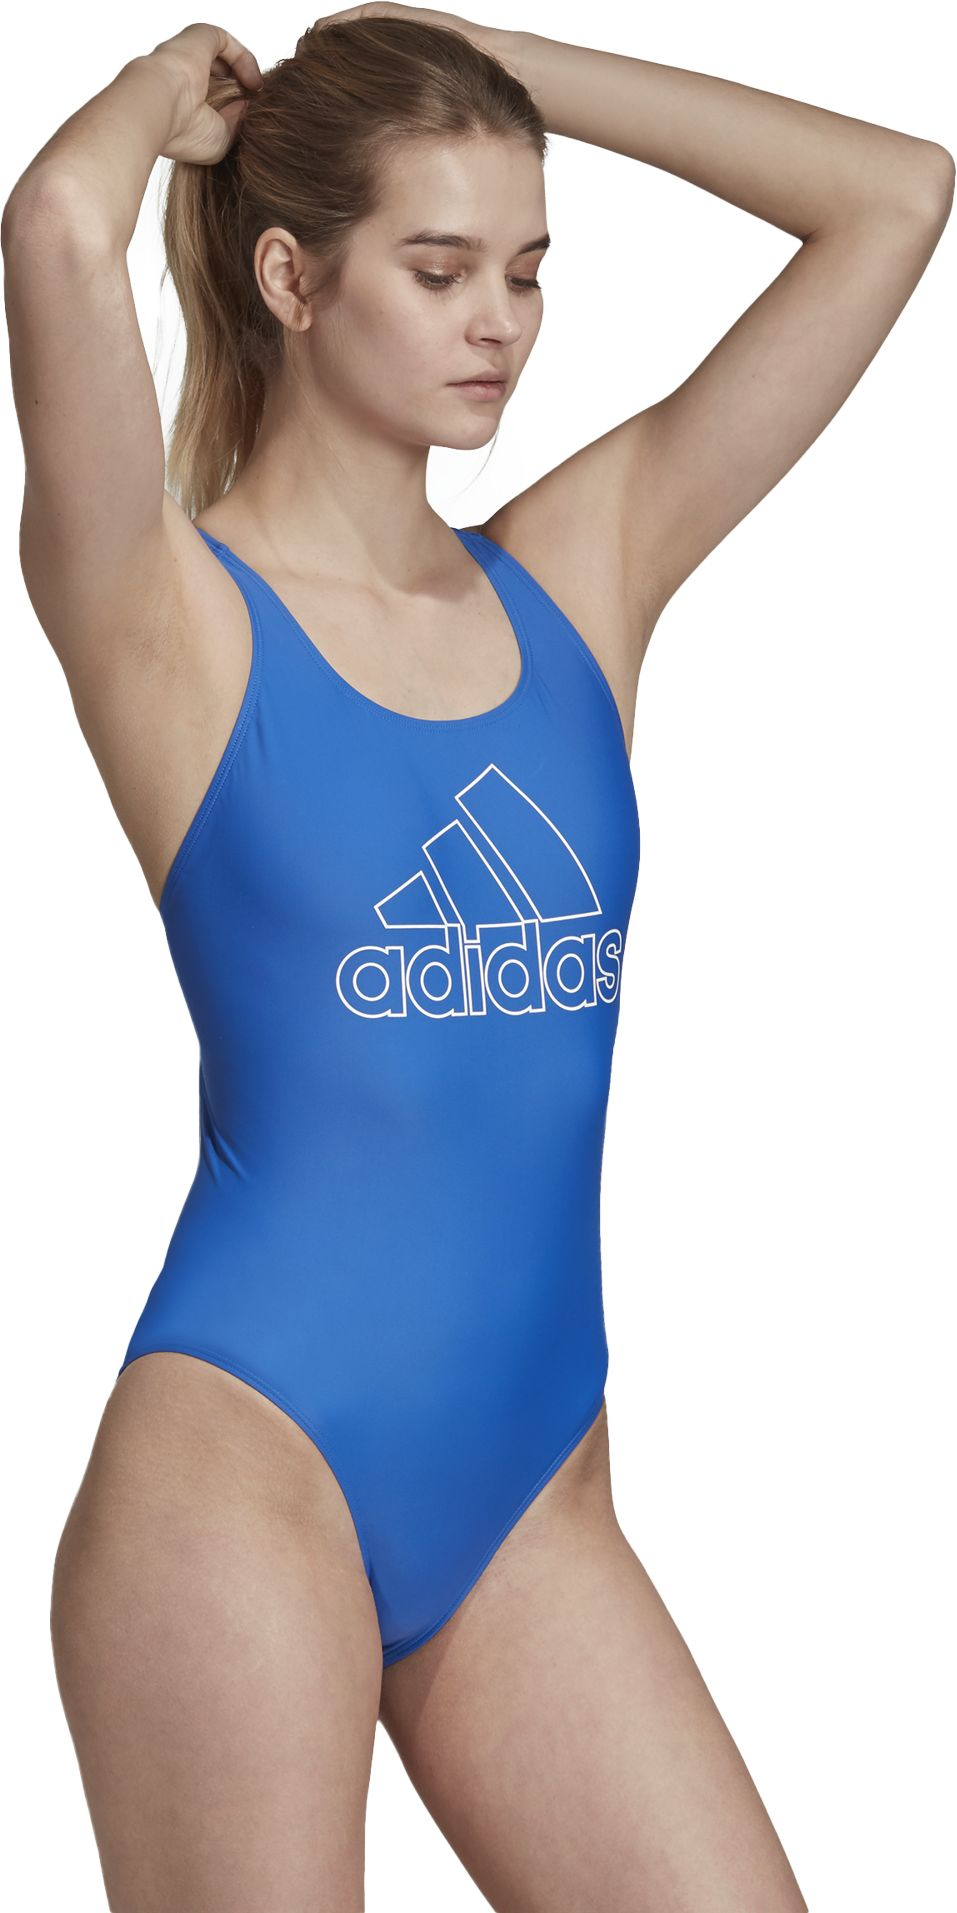 274552104101, W FIT SUIT BOS, ADIDAS, Detail